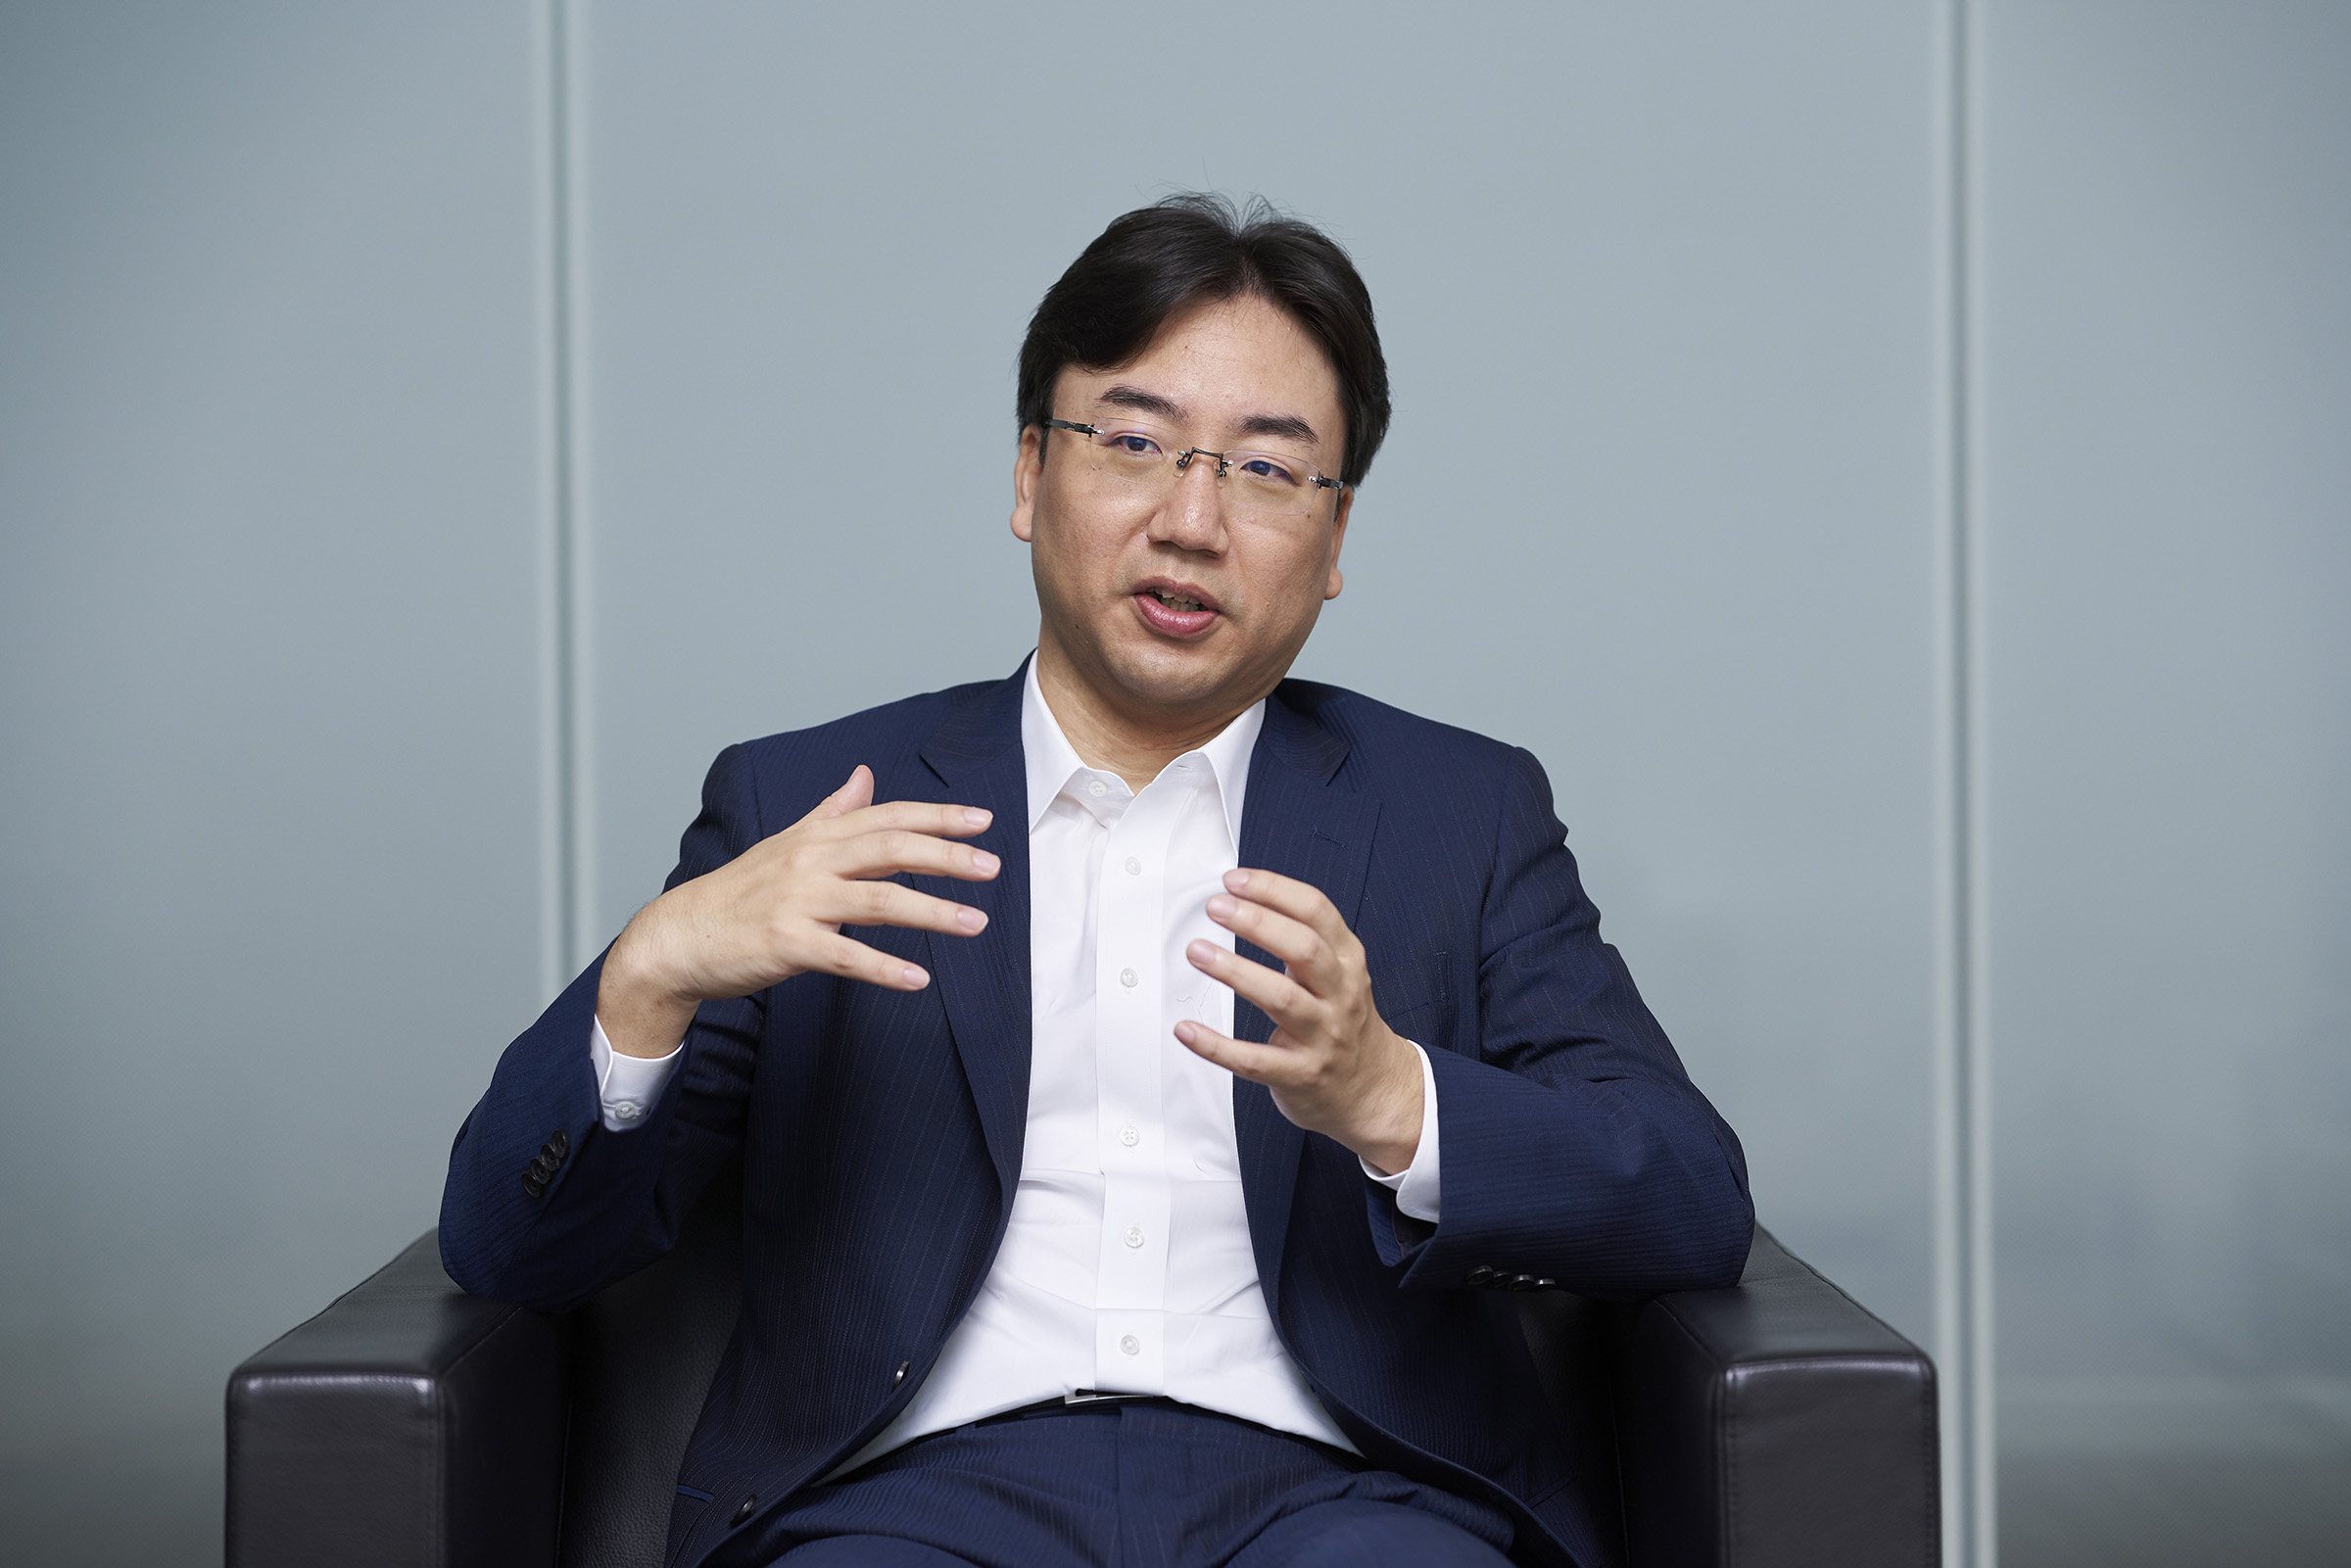 Shuntaro Furukawa, President of Nintendo Co., Ltd., photographed at Nintendo's global headquarters in Kyoto, Japan, on Oct. 10, 2019.